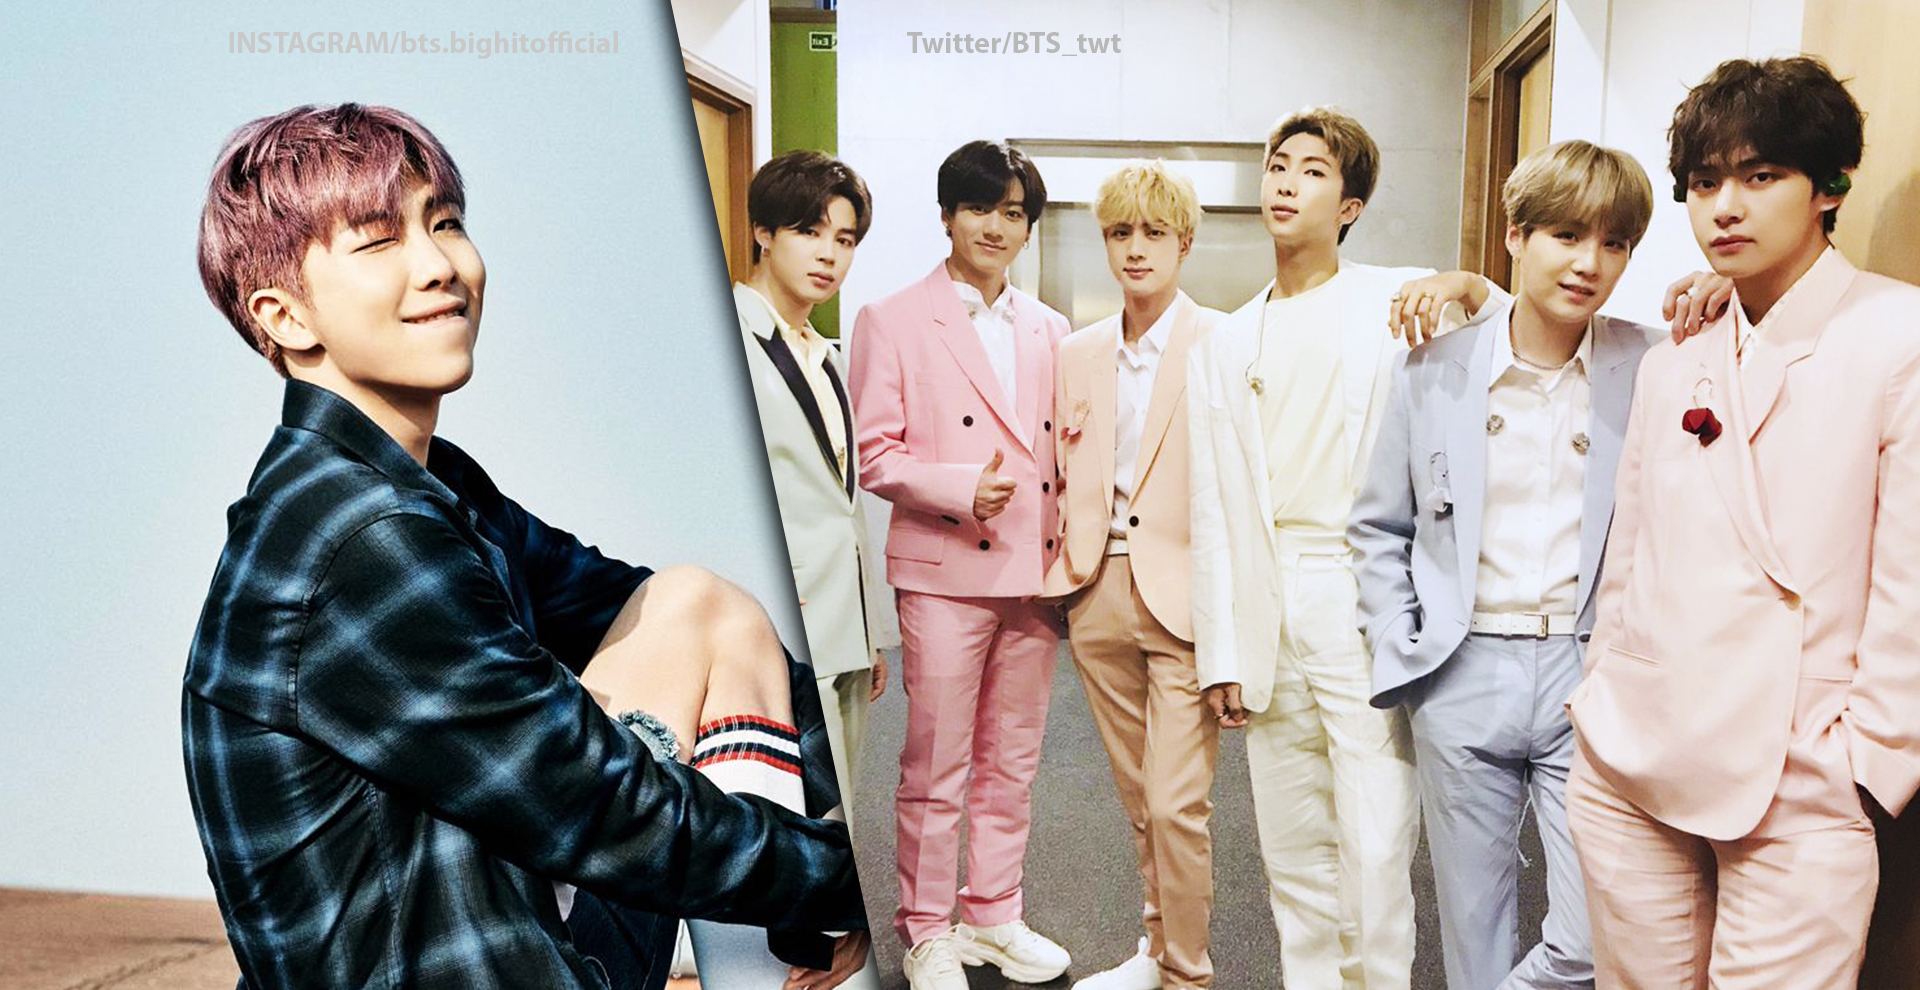 BTS: The Boy Band Taking Over The World